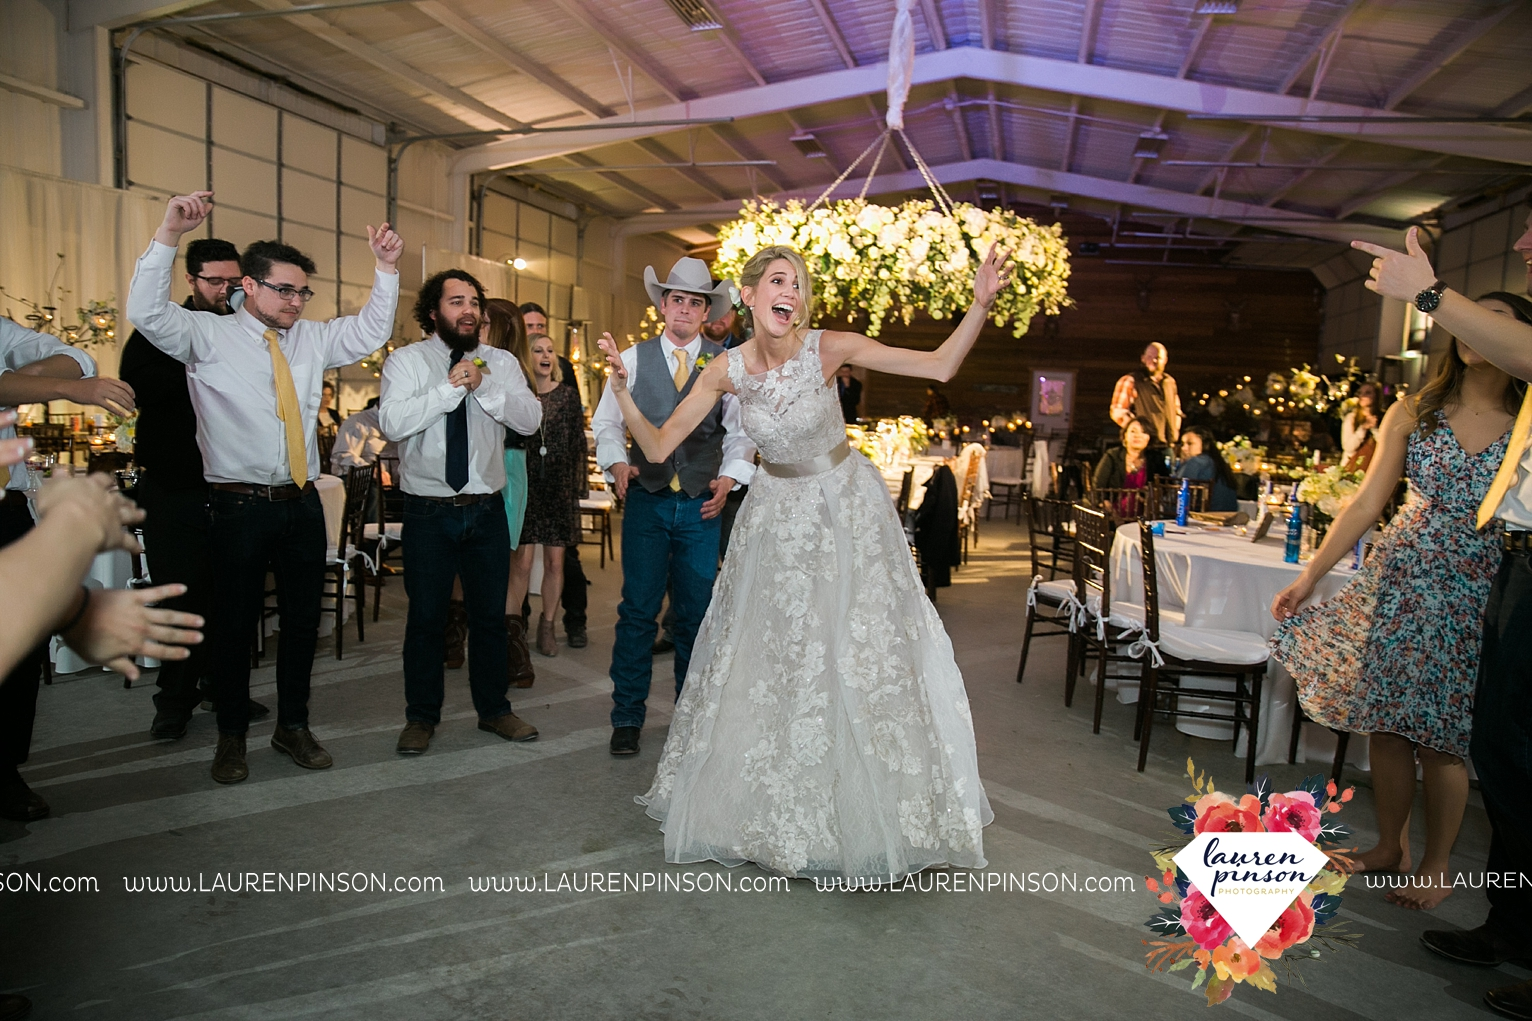 wichita-falls-texas-wedding-photographer-bowie-nocona-henrietta-country-barn-wedding_2214.jpg